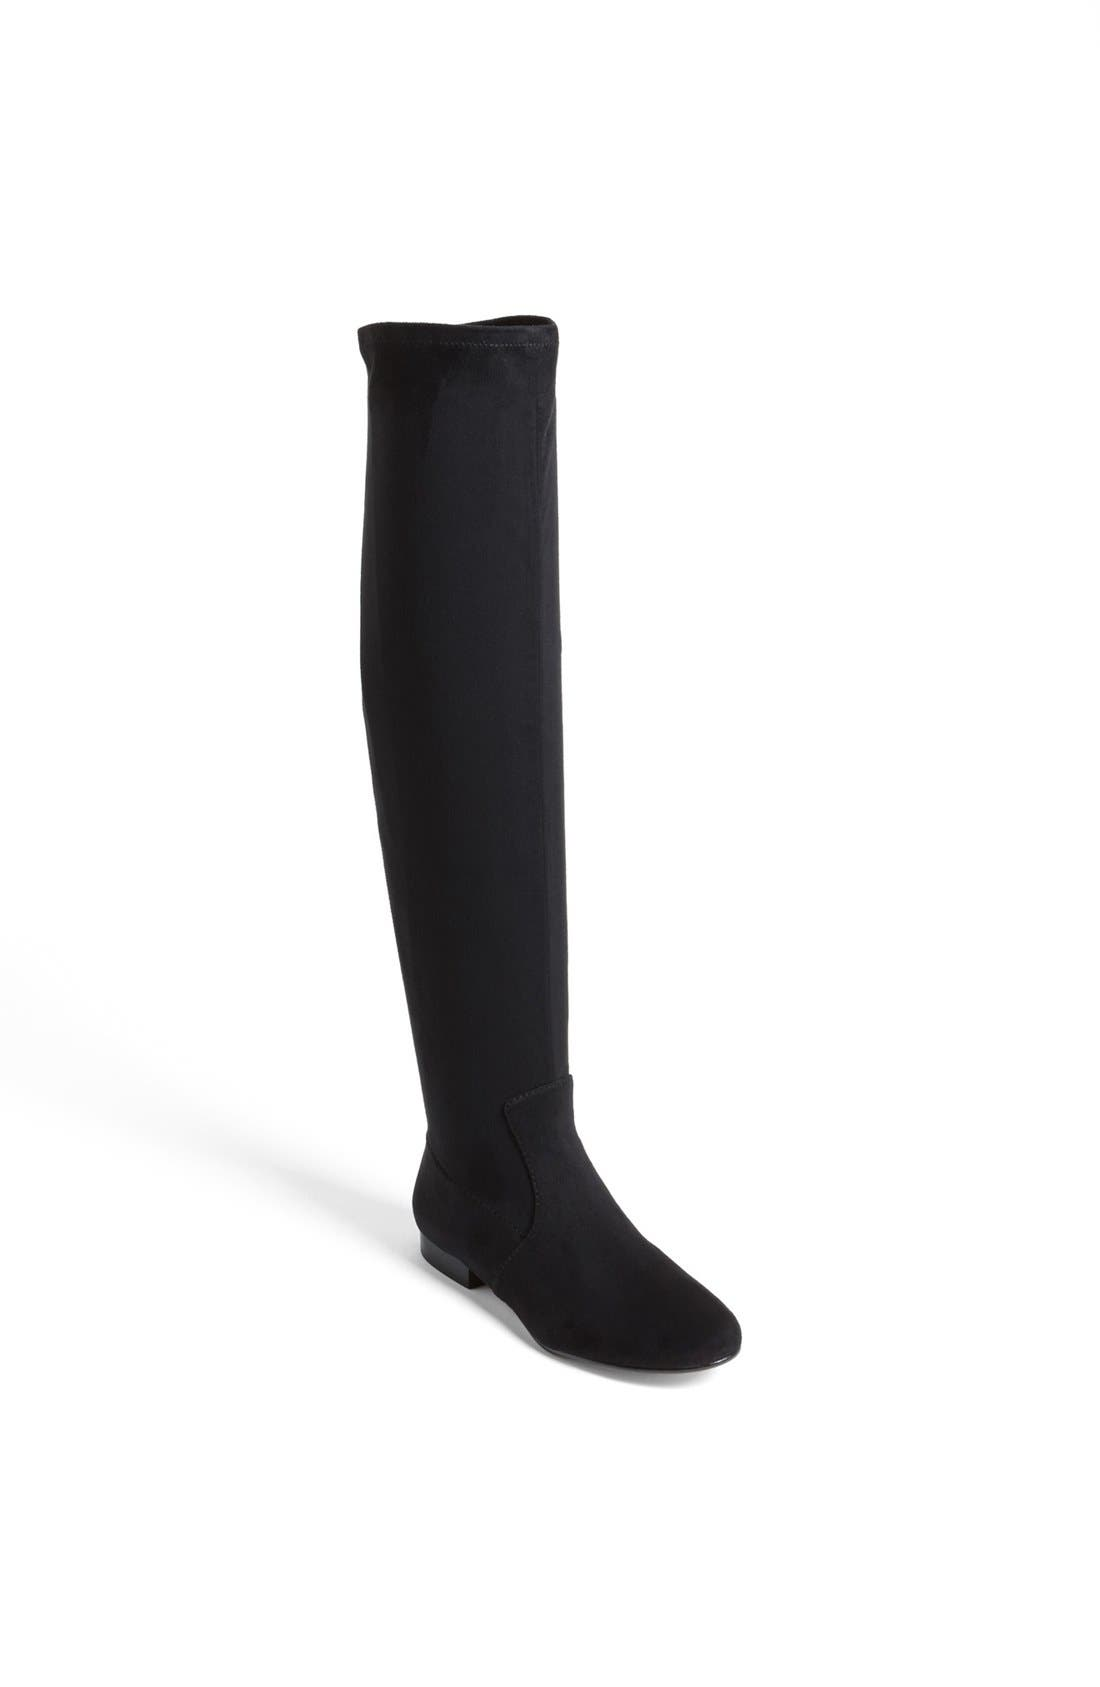 Main Image - Ivanka Trump 'Monty' Over the Knee Boot